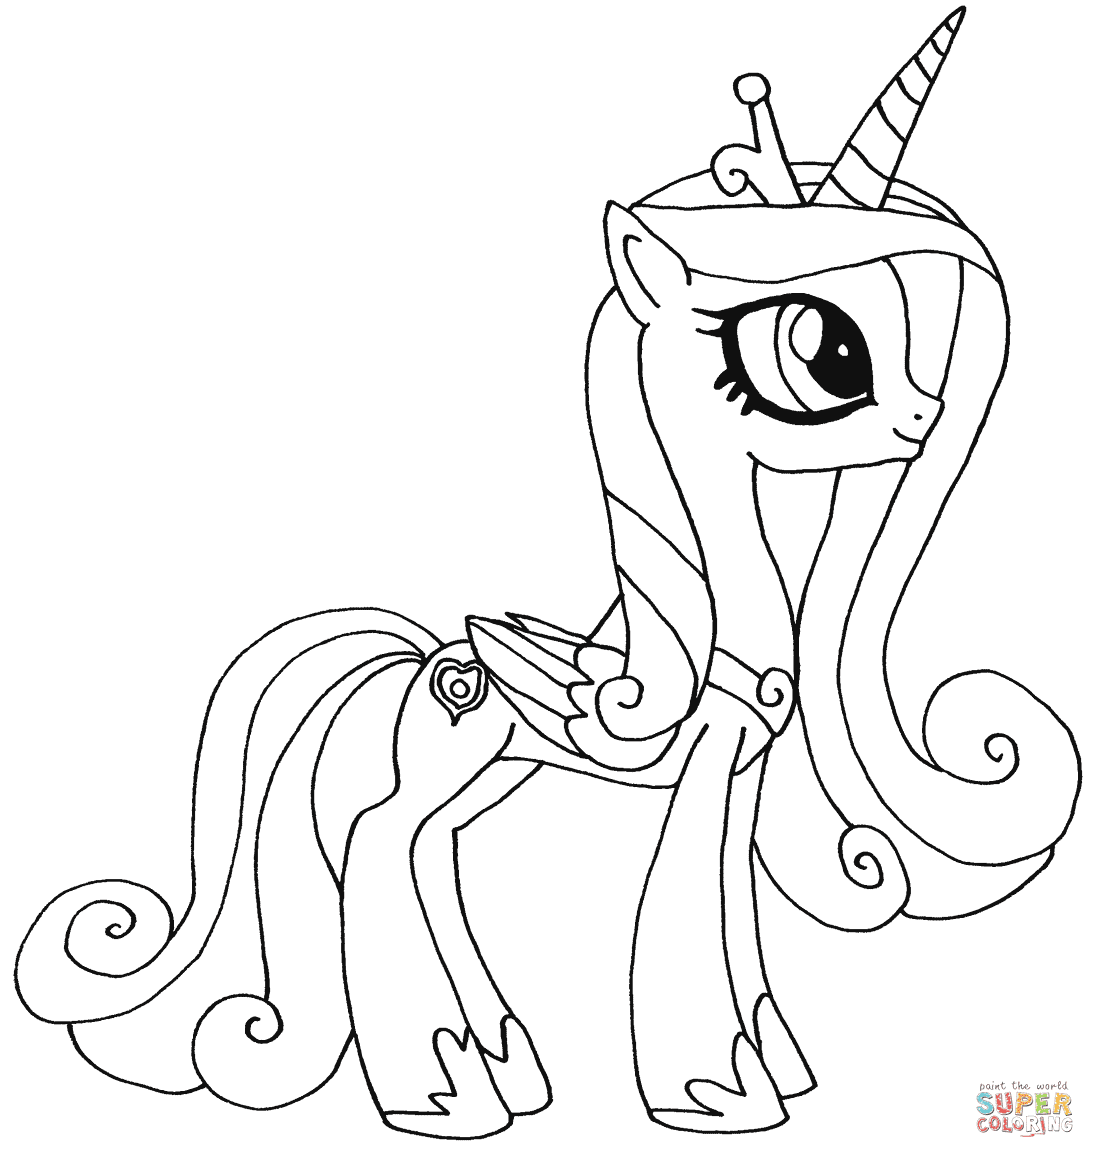 610 Colouring Page Of My Little Pony For Free